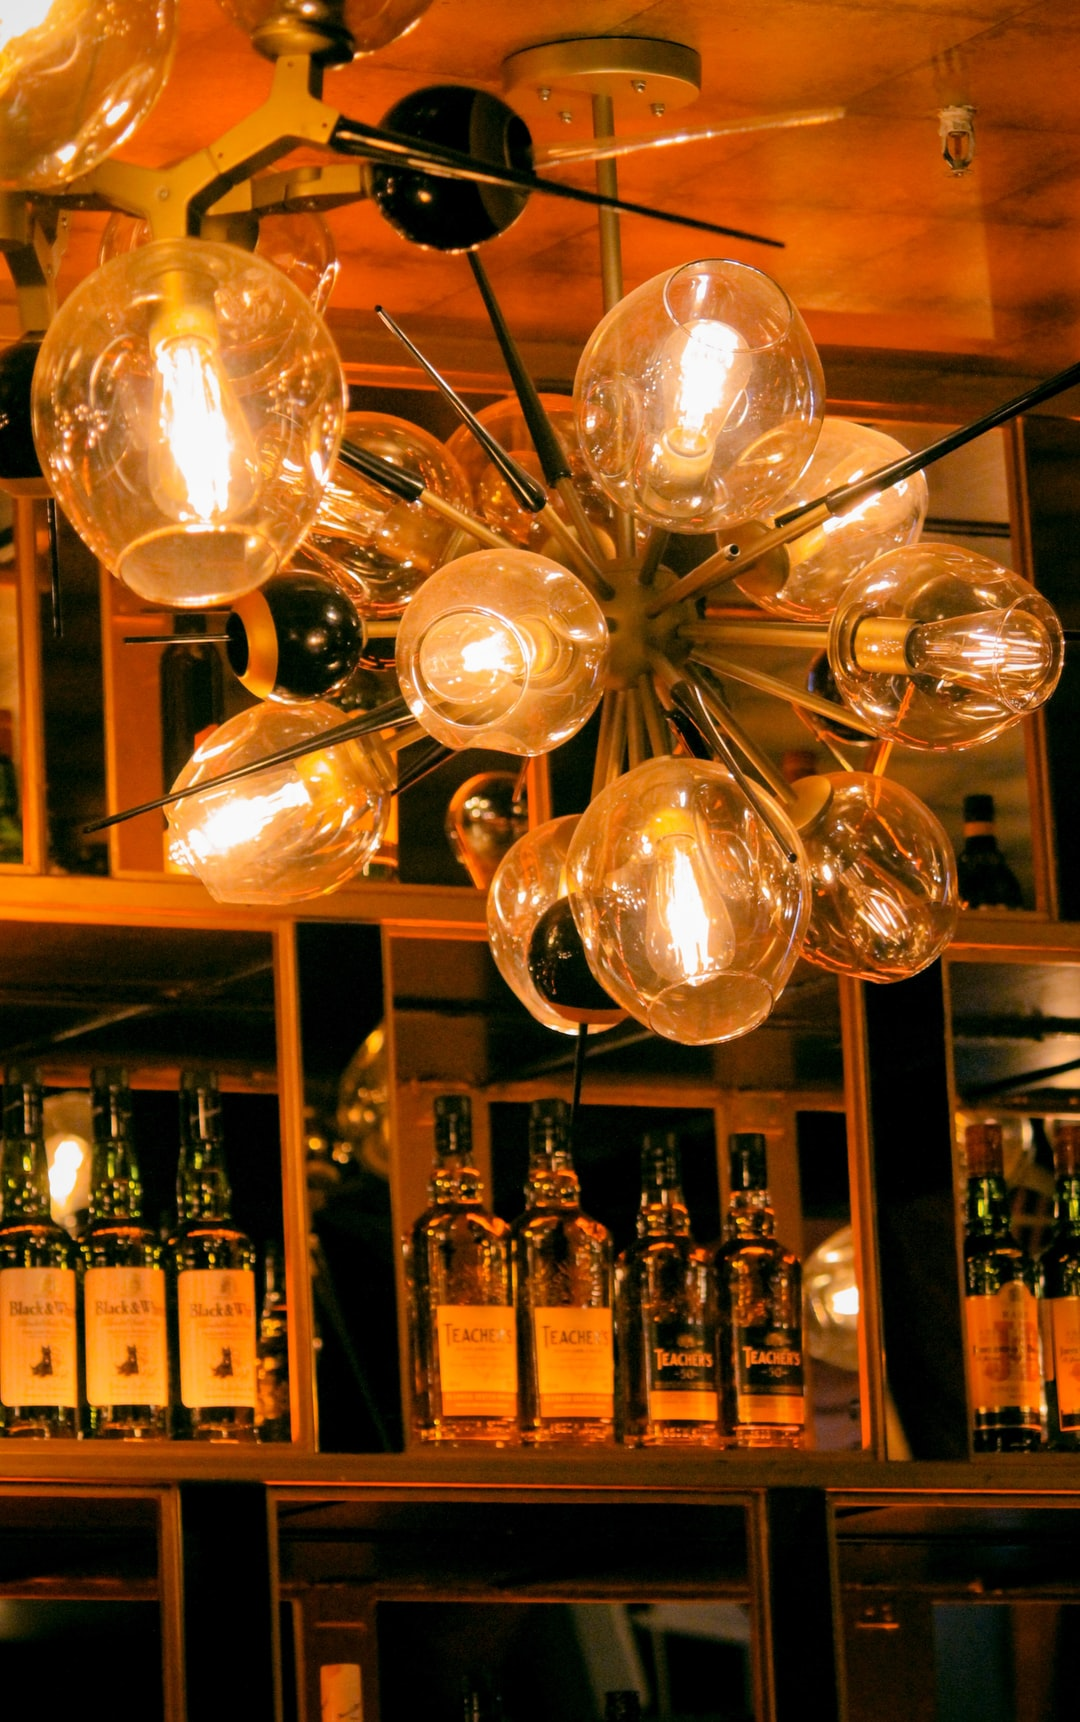 Incandescent ceiling bulbs with wine bottles in background